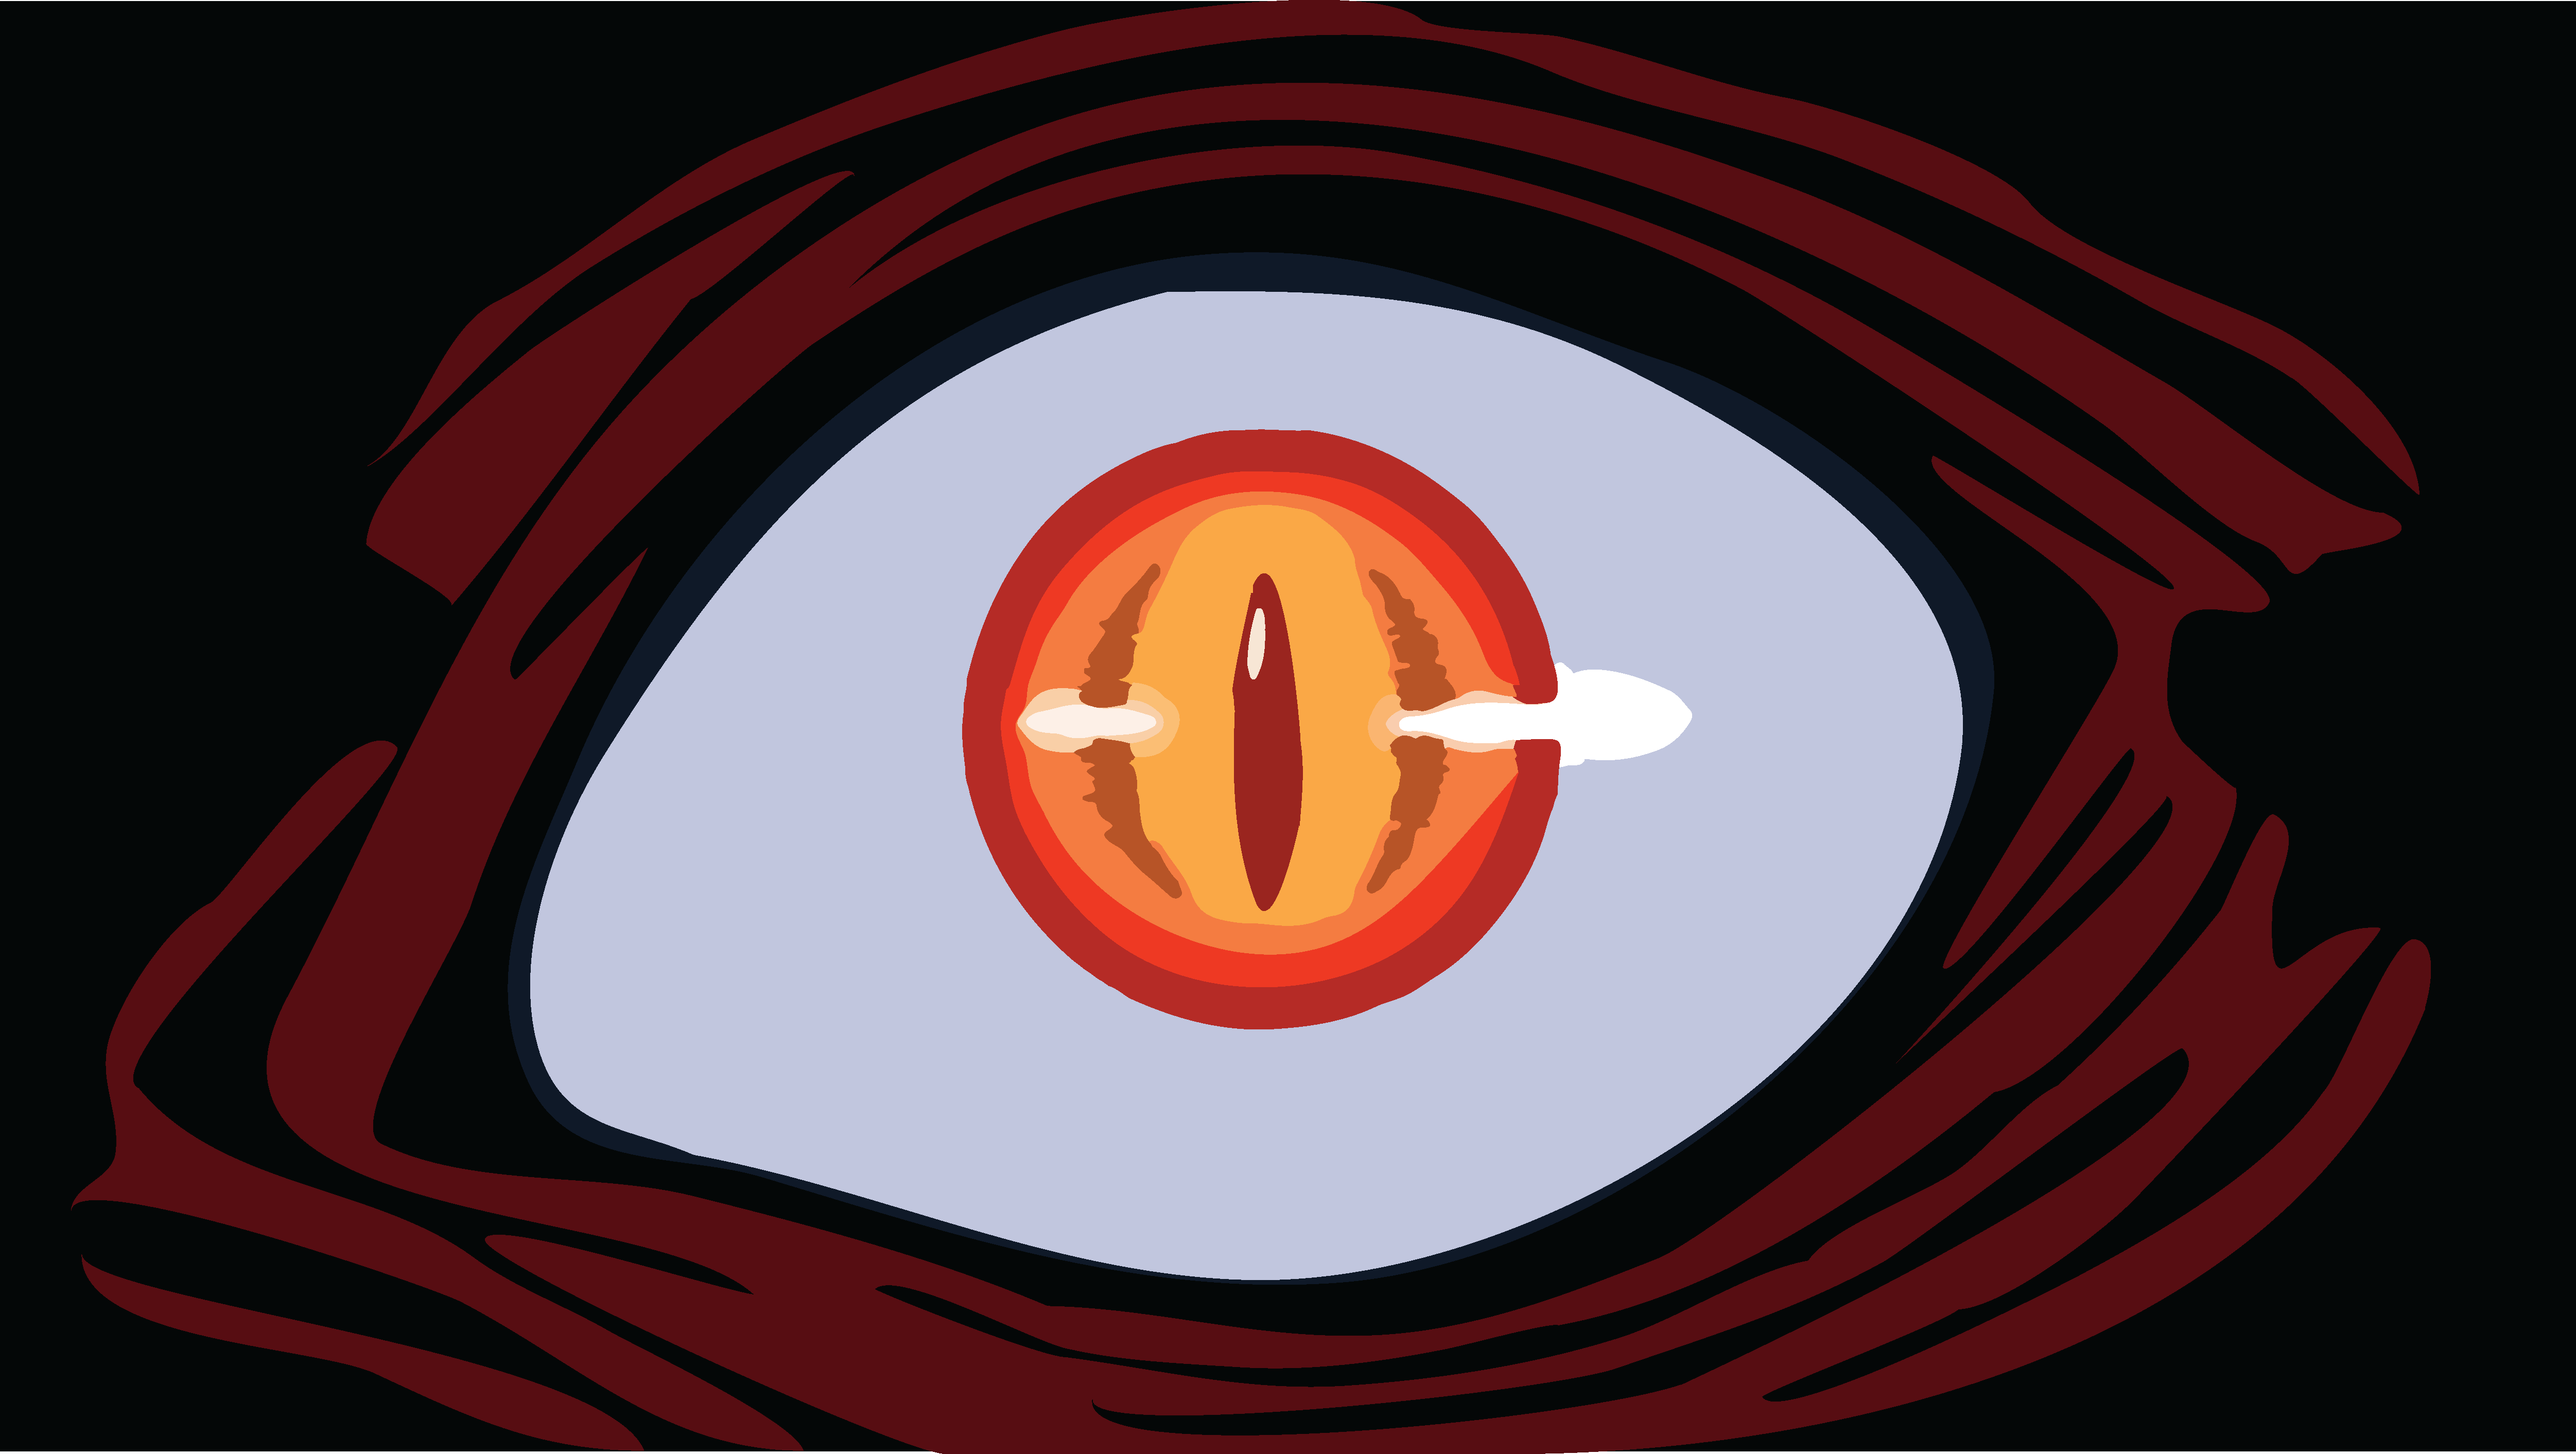 Alucard Eye Vector By Cosmicmoonshine On Deviantart